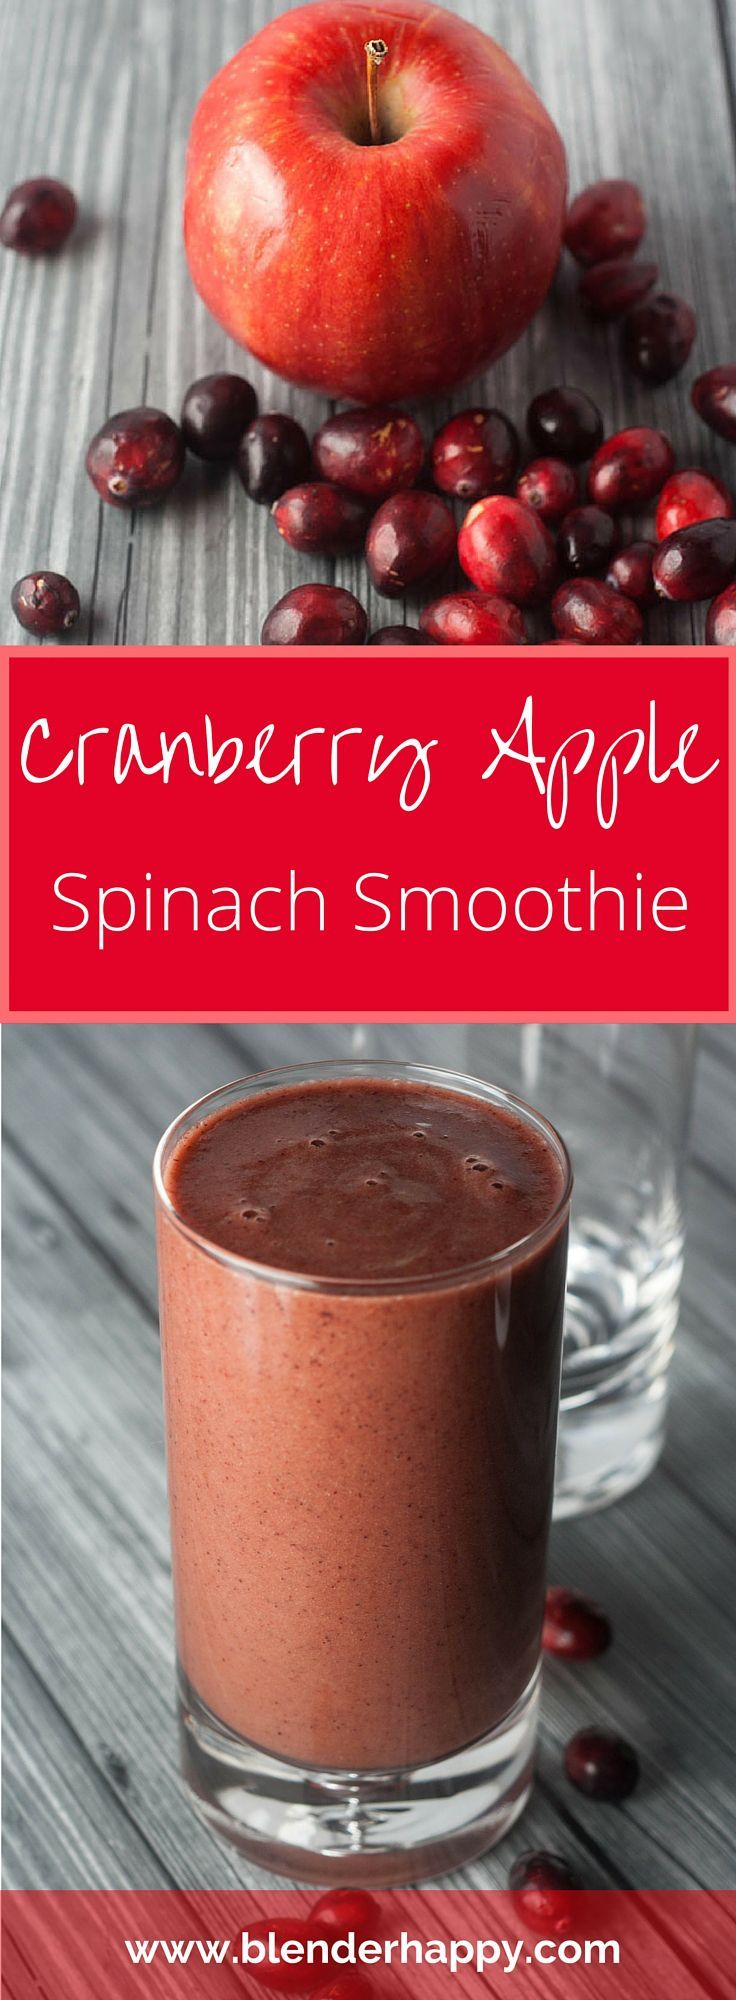 This cranberry apple spinach smoothie packs a punch - it is rich in fibre, antioxidants and immune boosting Vitamin C.